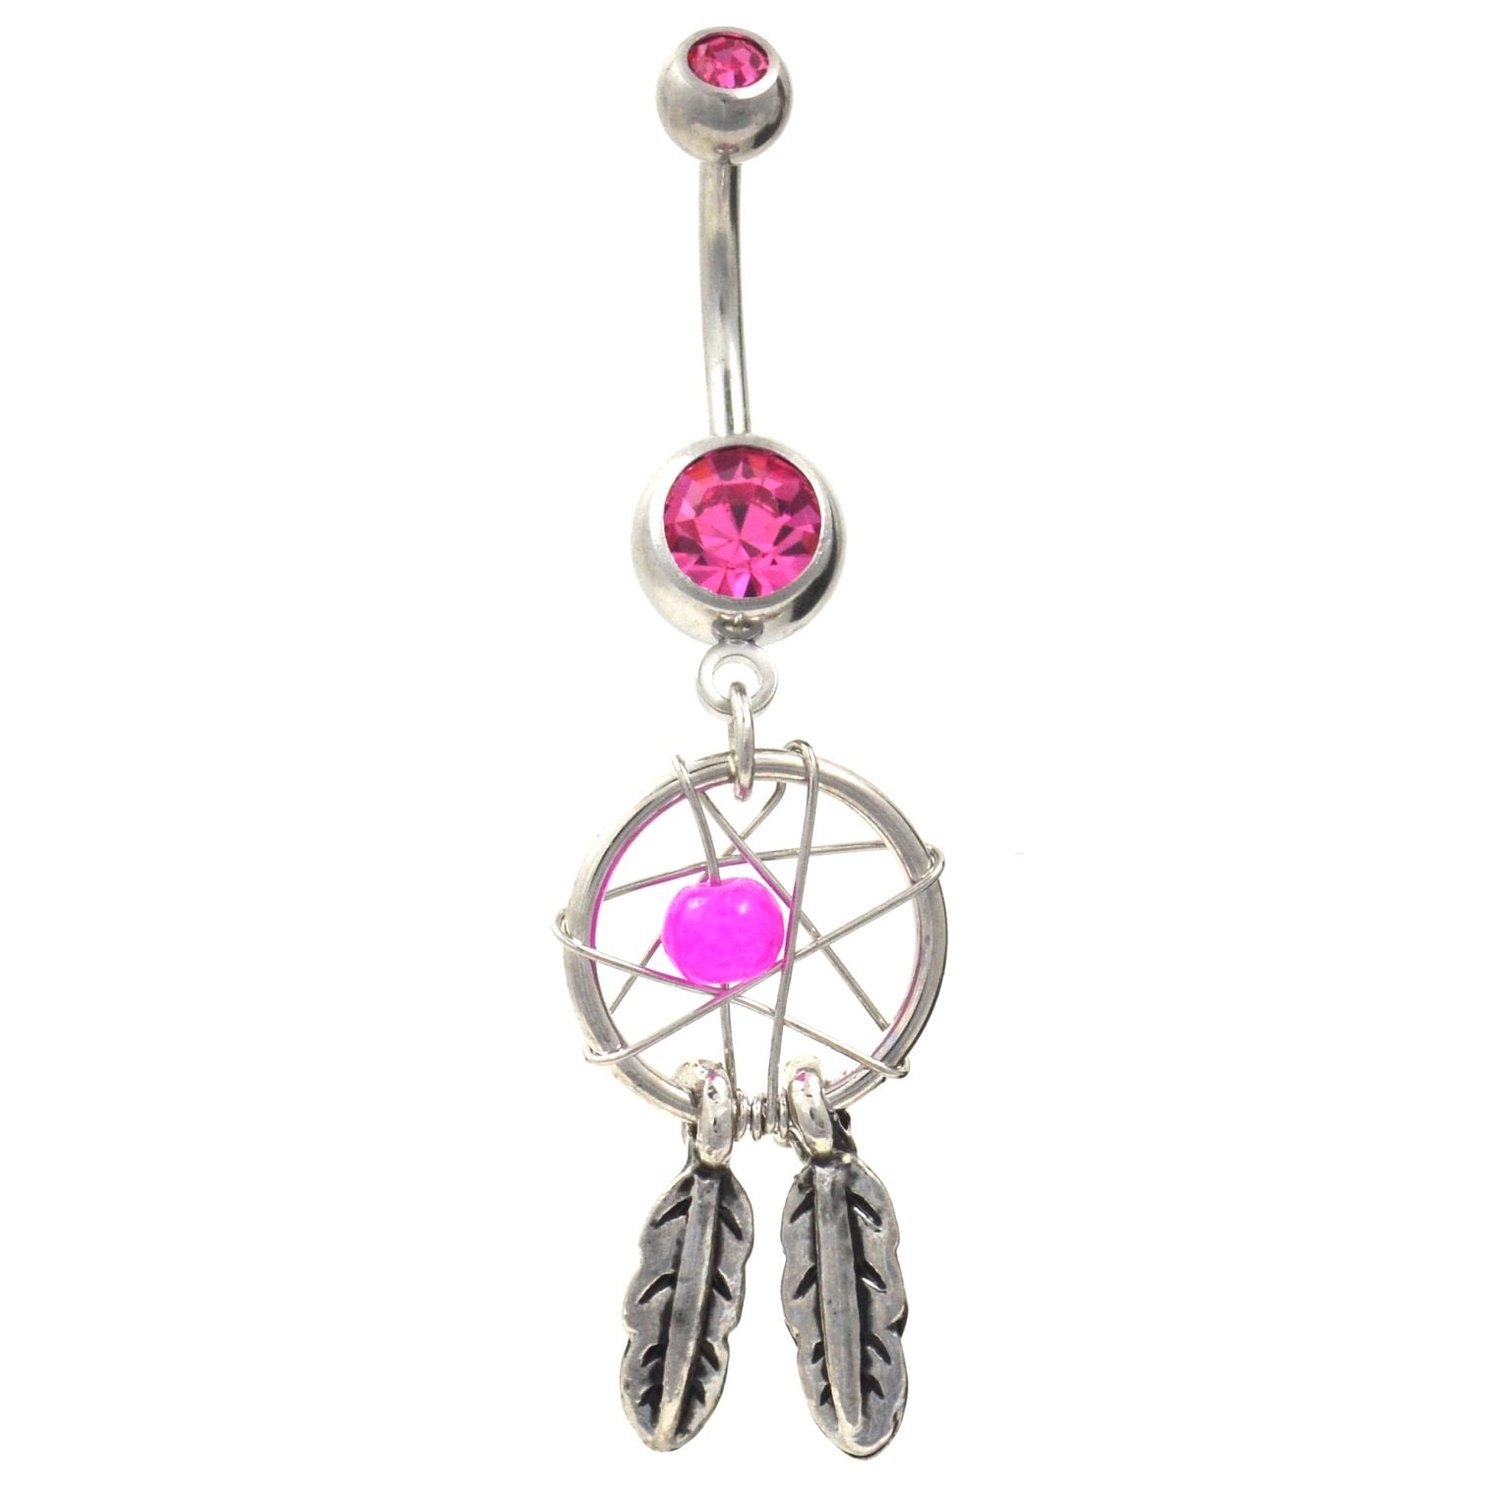 Amazon.com: dream catcher gem & feathers navel ring fancy style belly button piercing jewelry w/pink cz stones: body piercing rings: jewelry